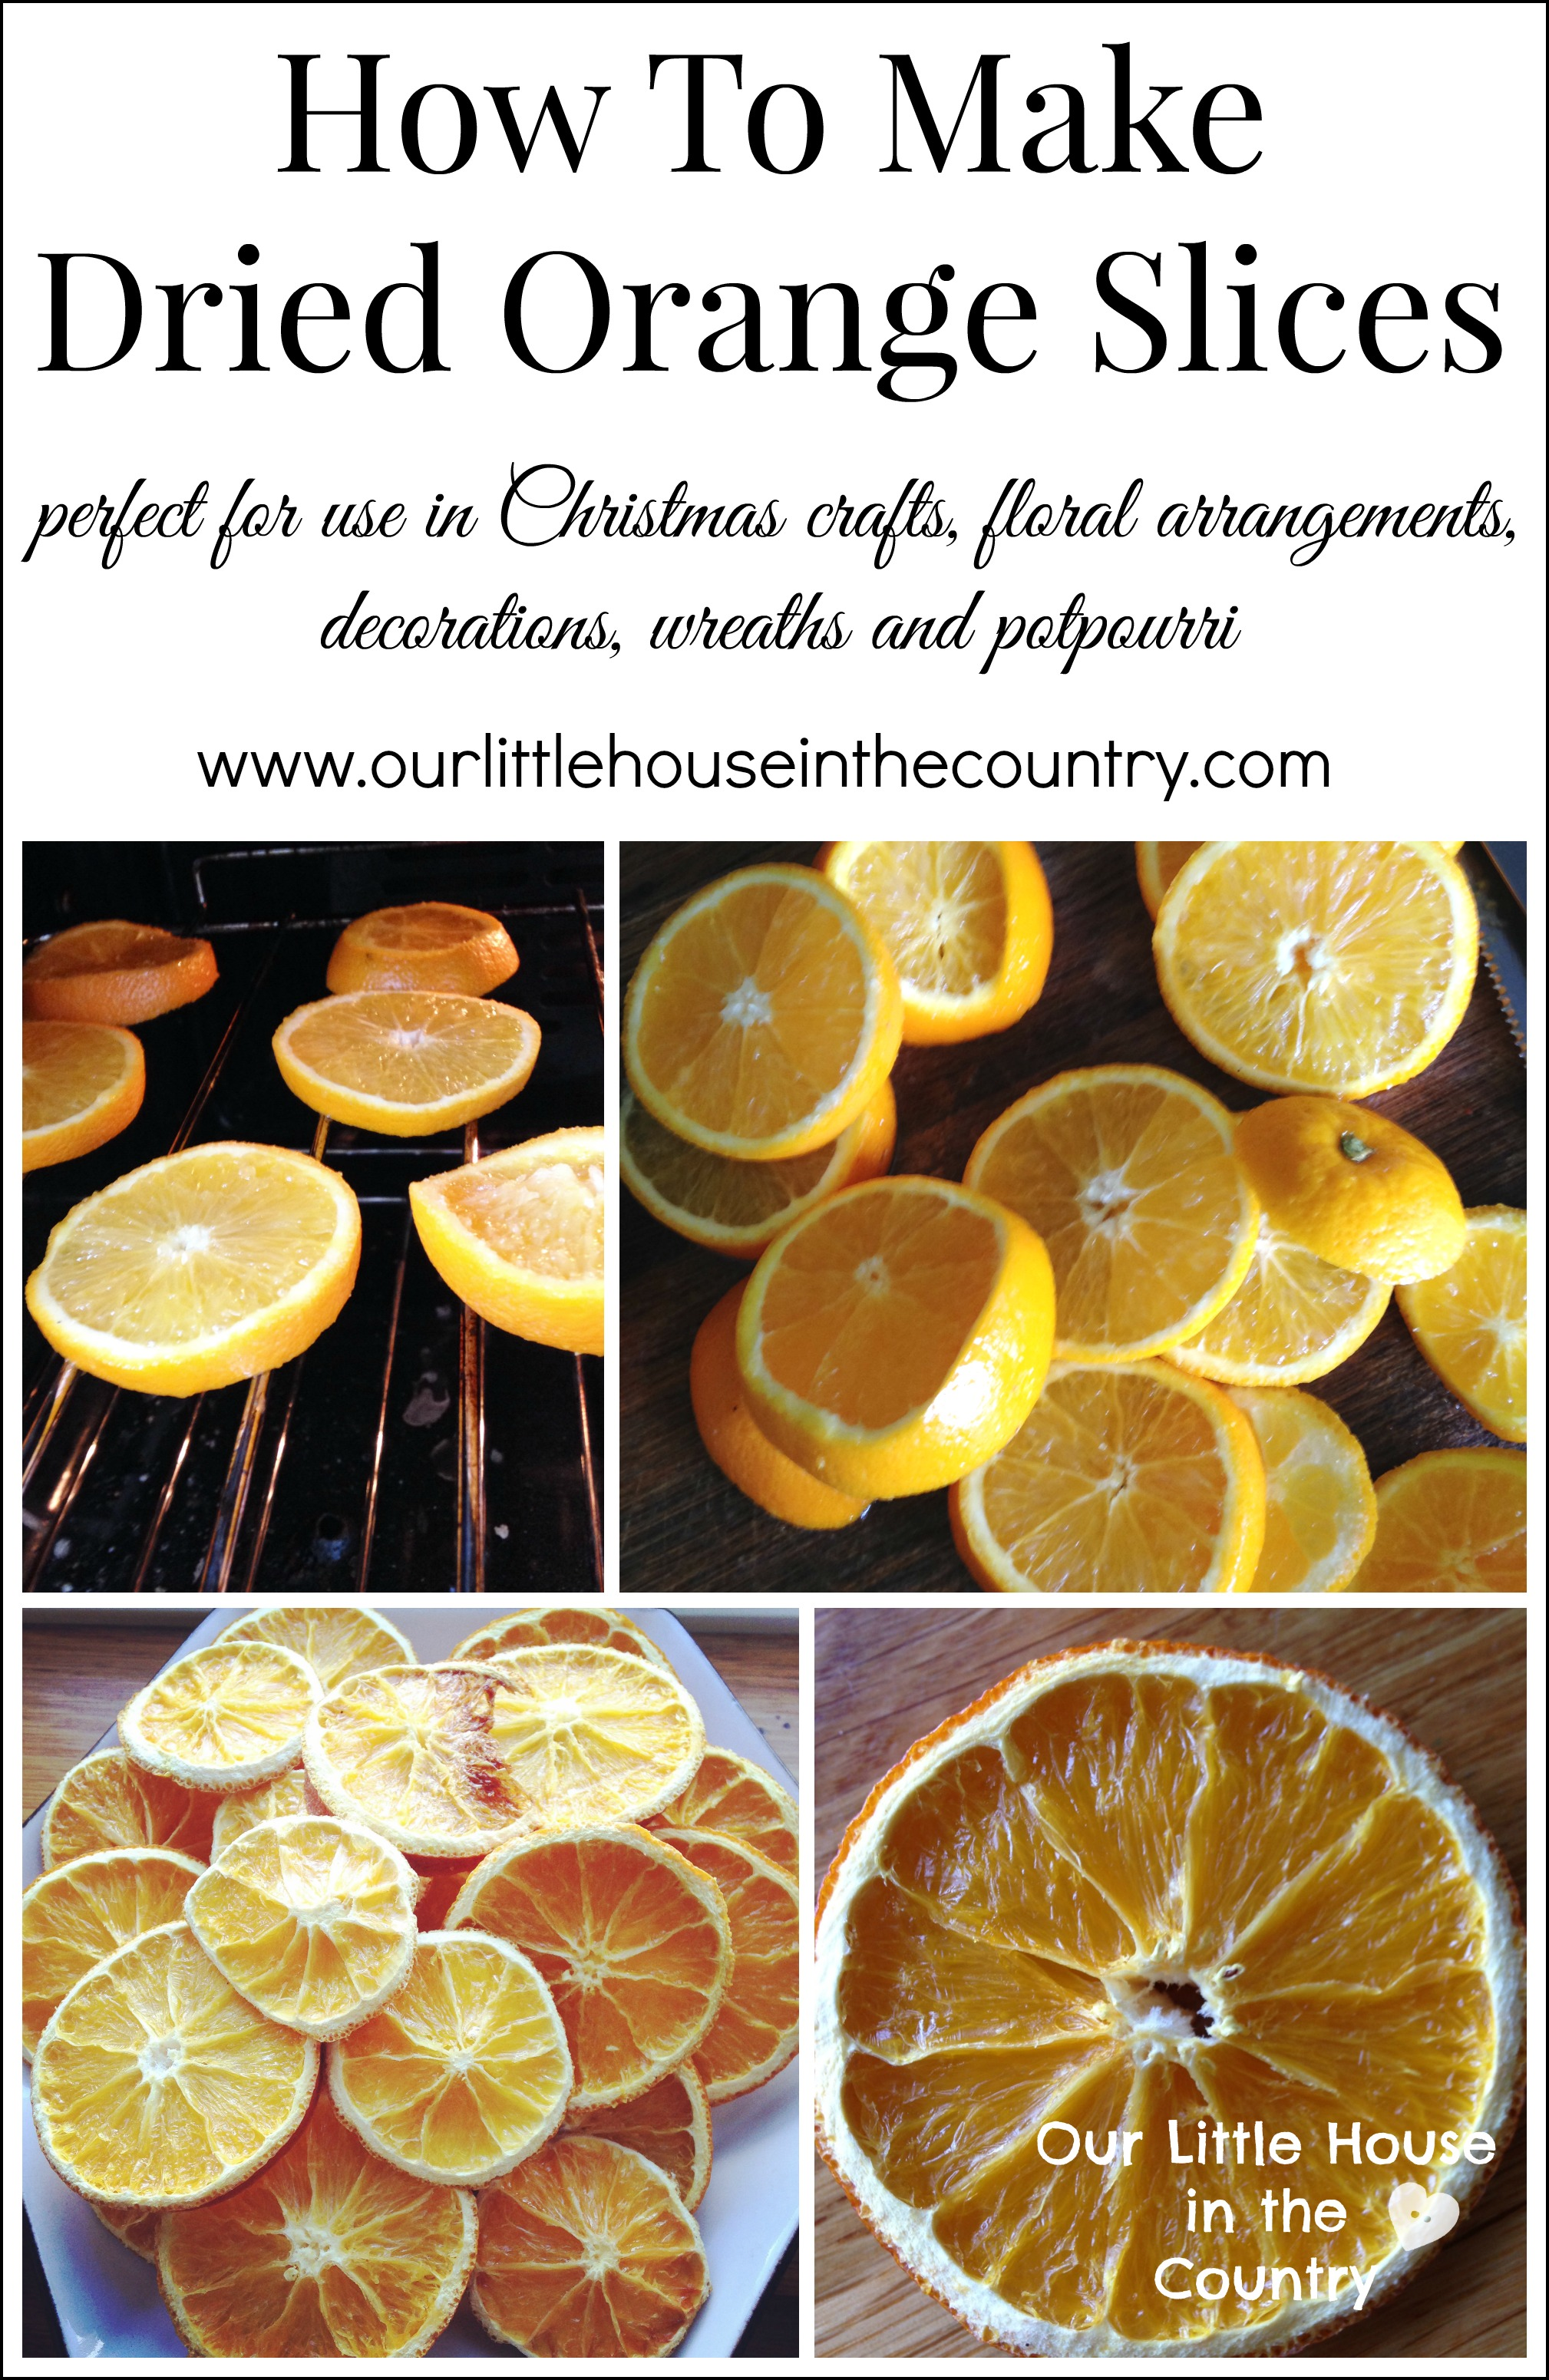 How To Make Dried Orange Slices Our Little House In The Country